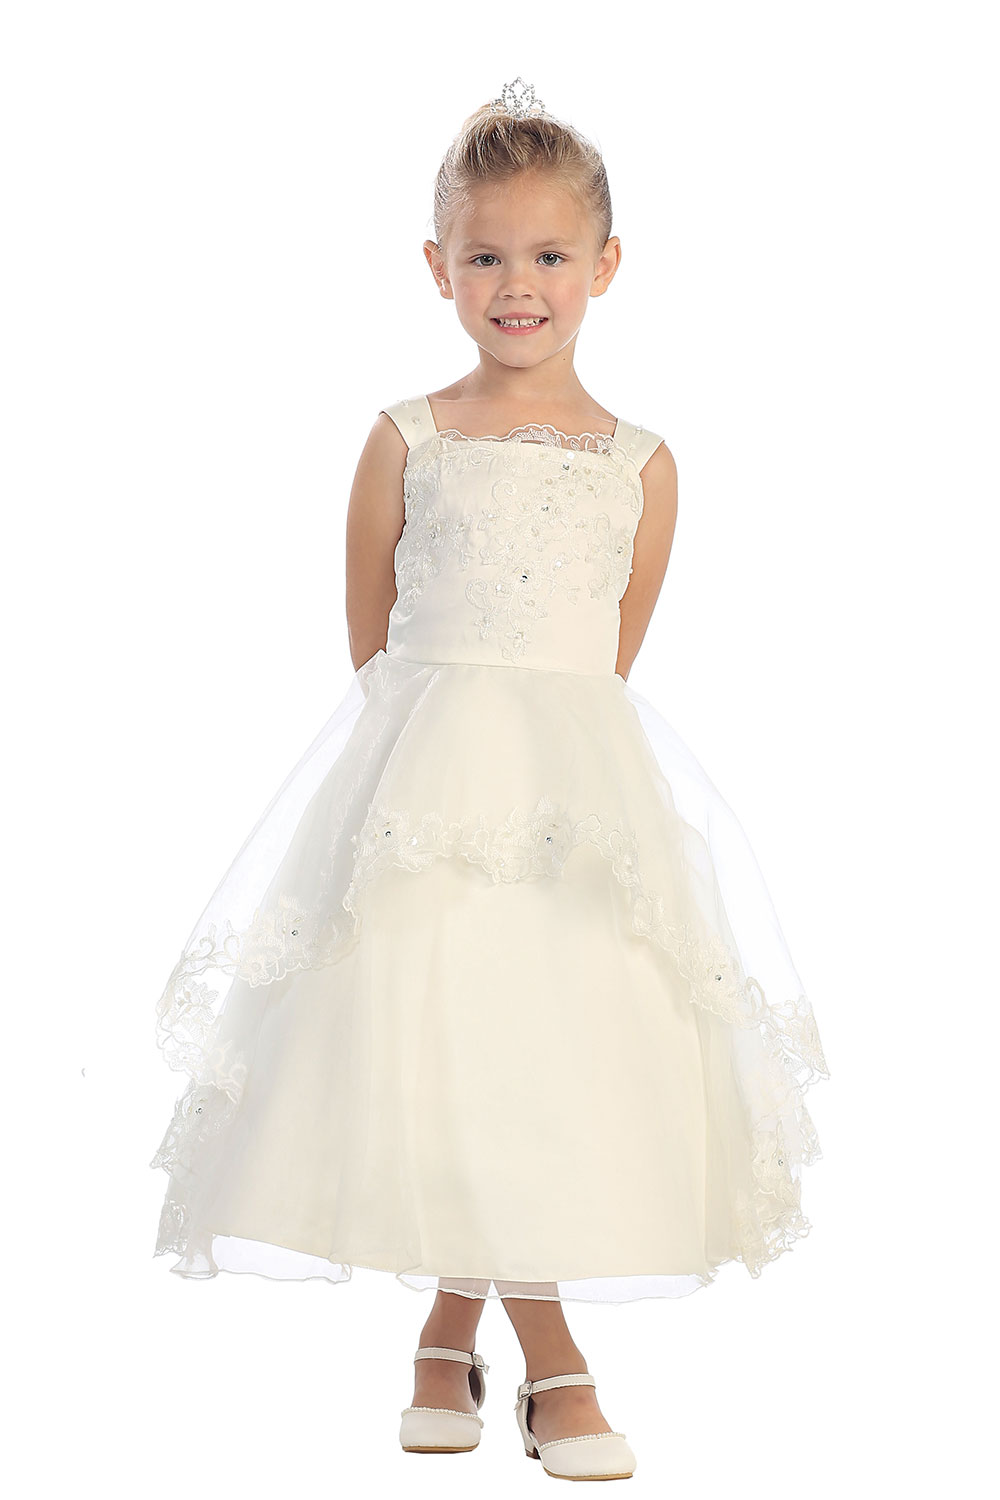 A-Line Mother Daughter Dresses for Girls Mid-Calf Flower Girls Dresses For Wedding Gowns Tulle Pageant Dresses for Little Girls